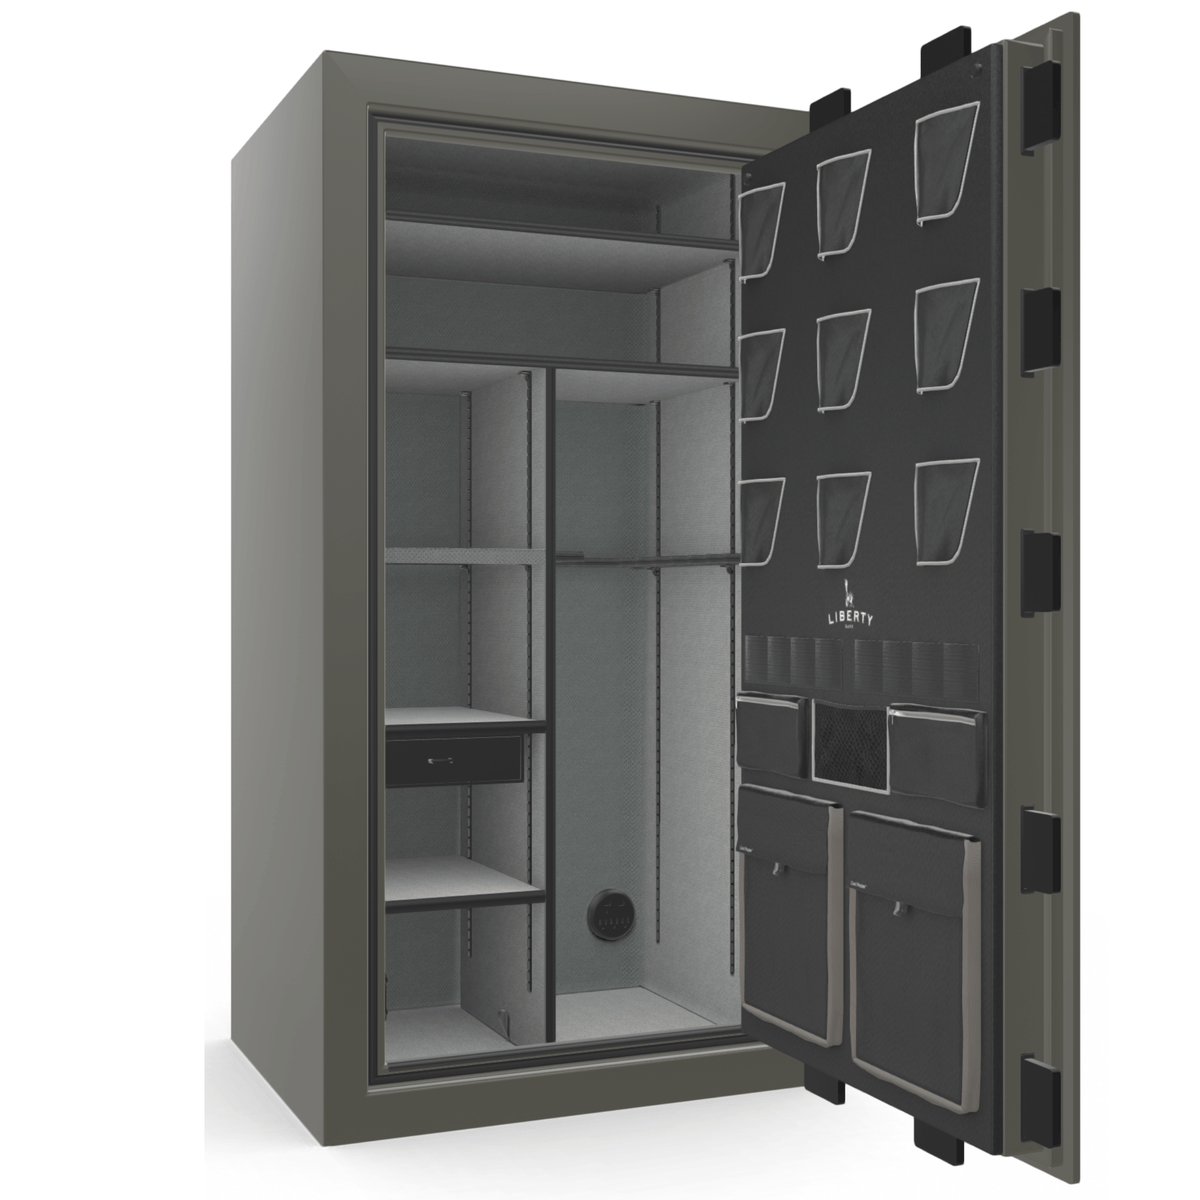 "Classic Plus | 40 | Level 7 Security | 110 Minute Fire Protection | Gray 2-Tone | Black Mechanical Lock | 65.5""(H) x 36""(W) x 32""(D)"